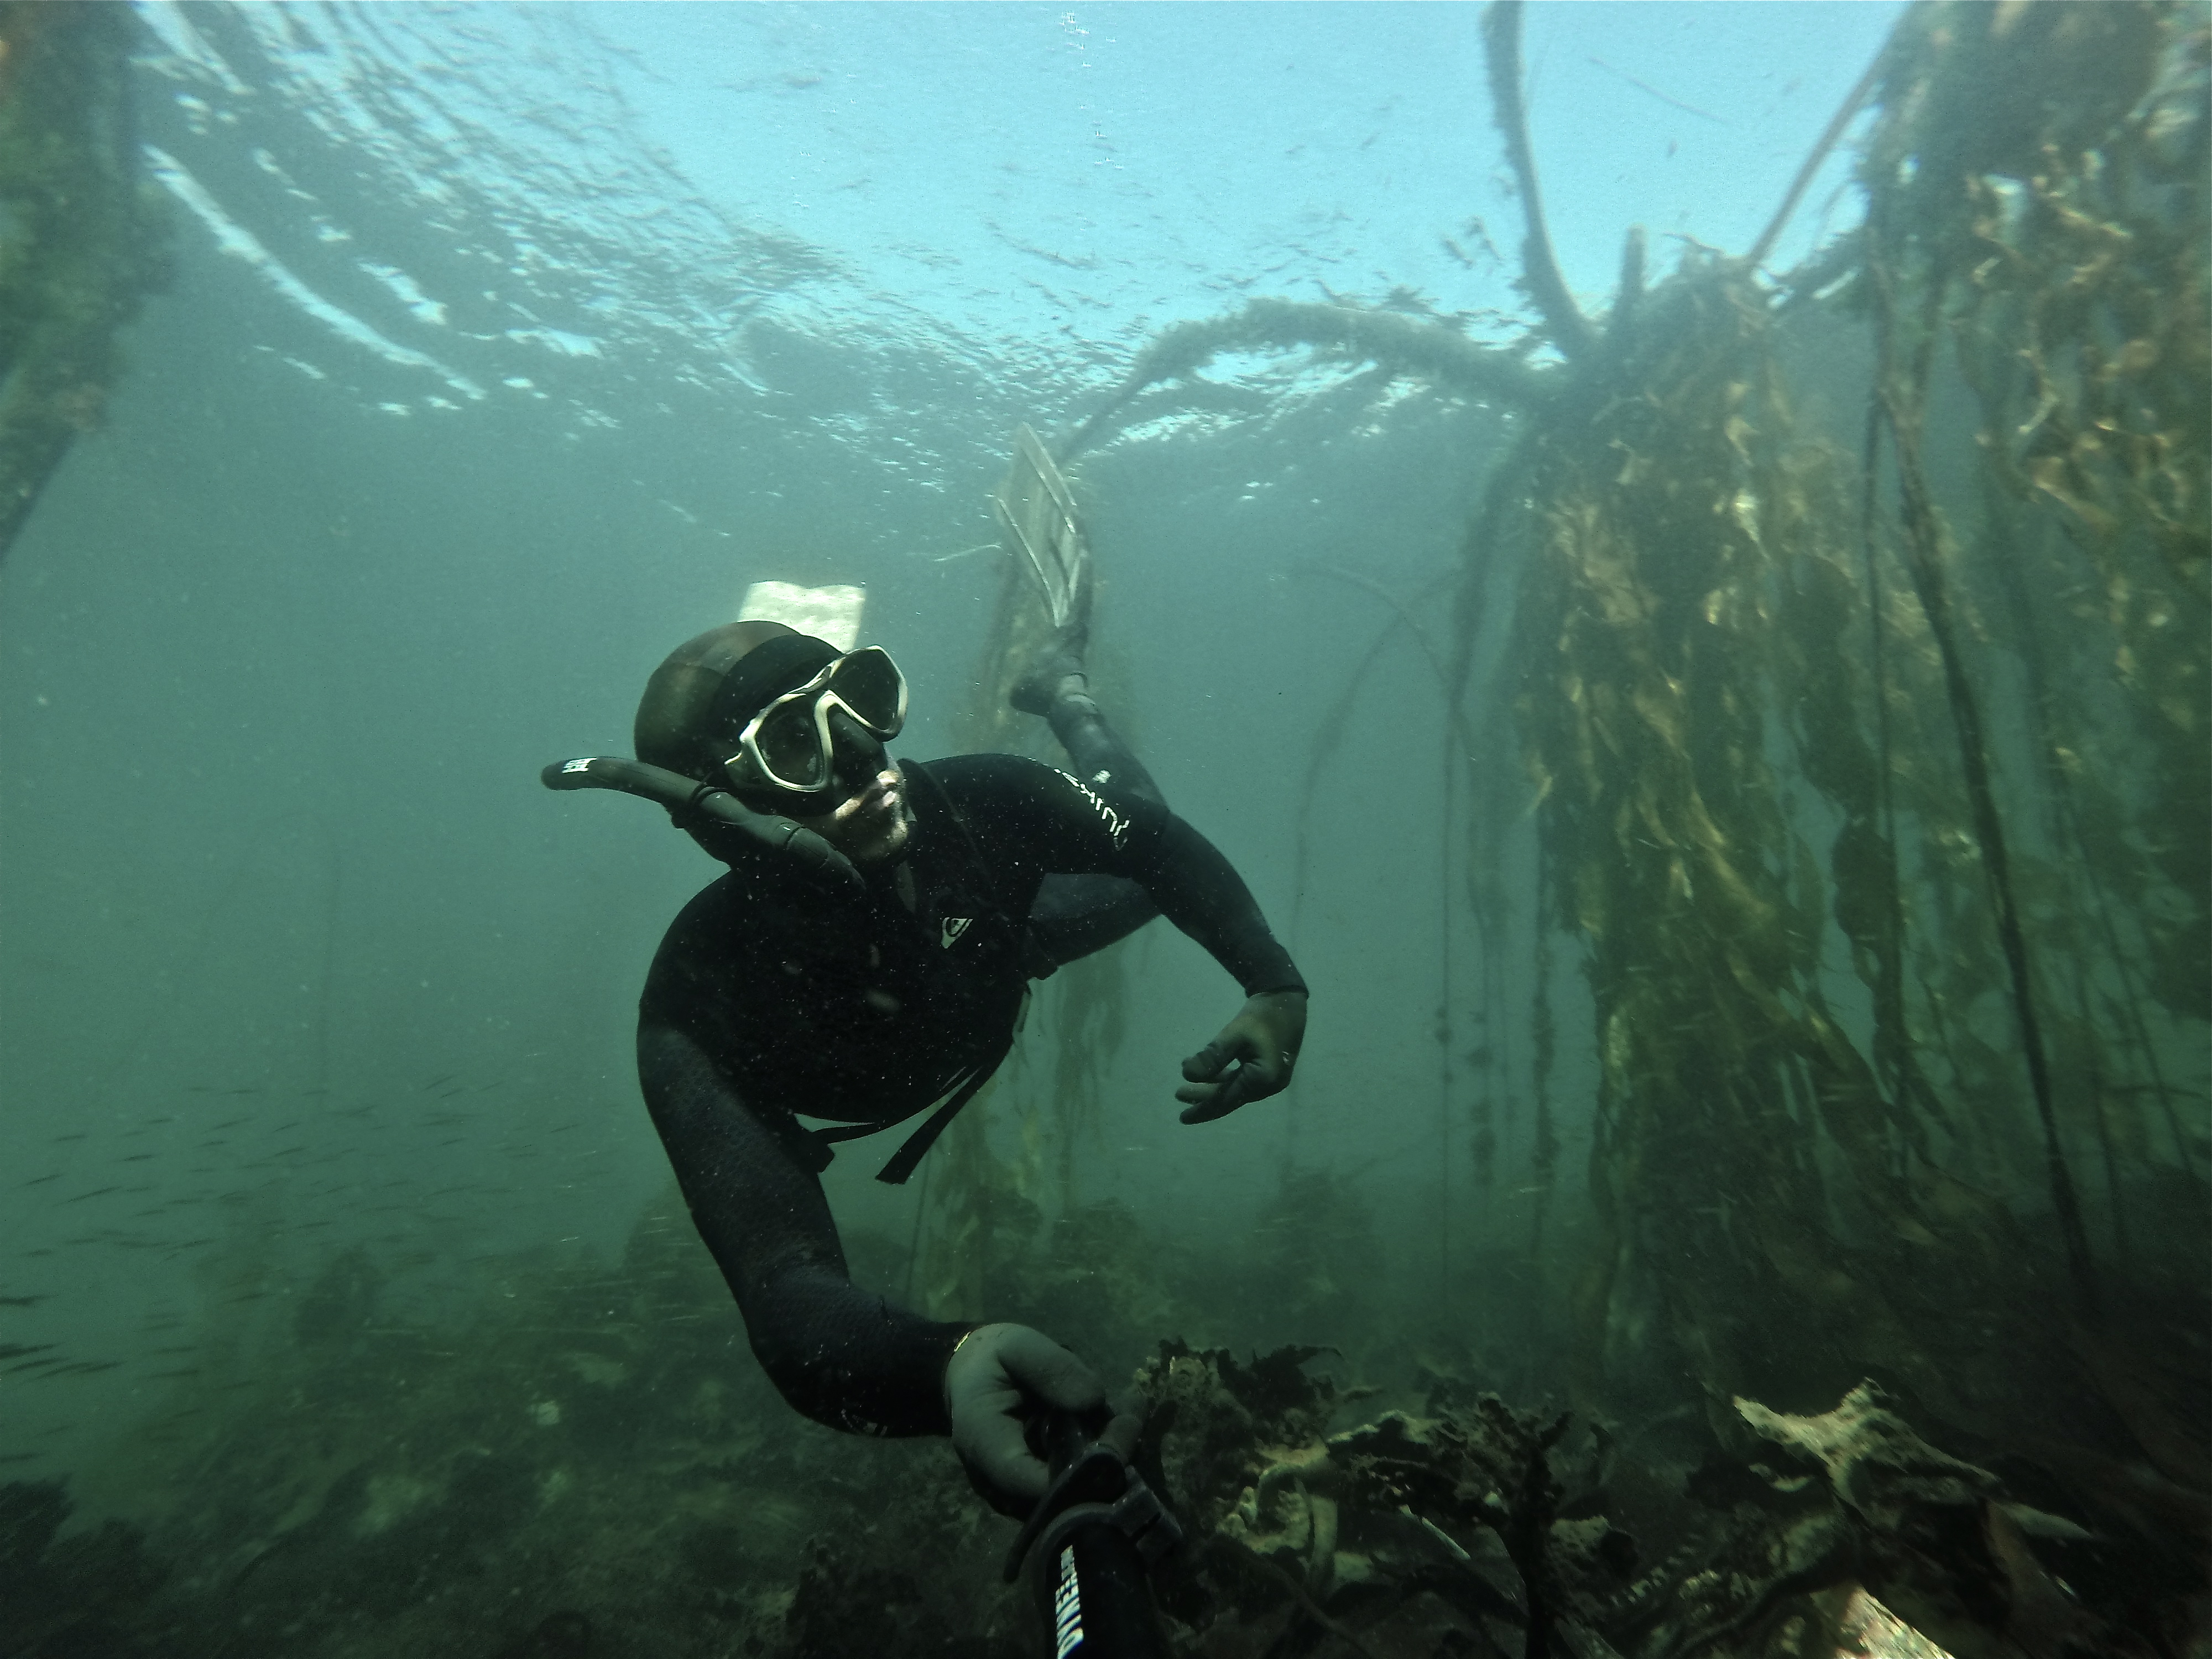 Scuba Diving at the Chinese Cemetery